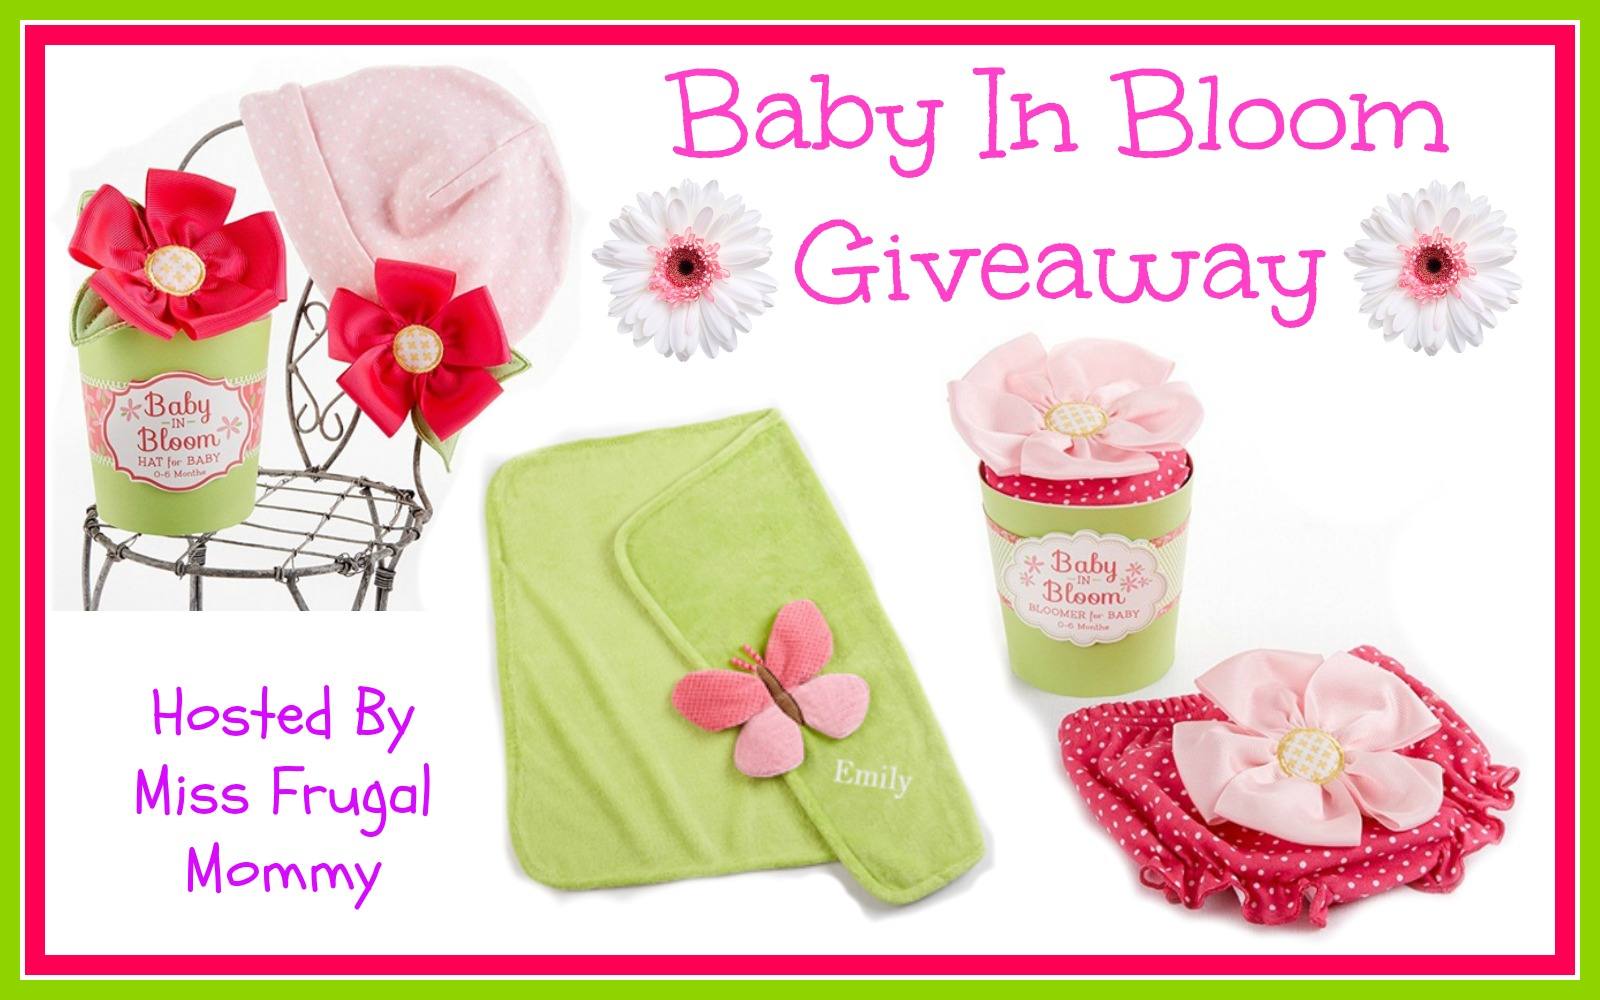 Baby In Bloom Giveaway ~ Ends 5/2